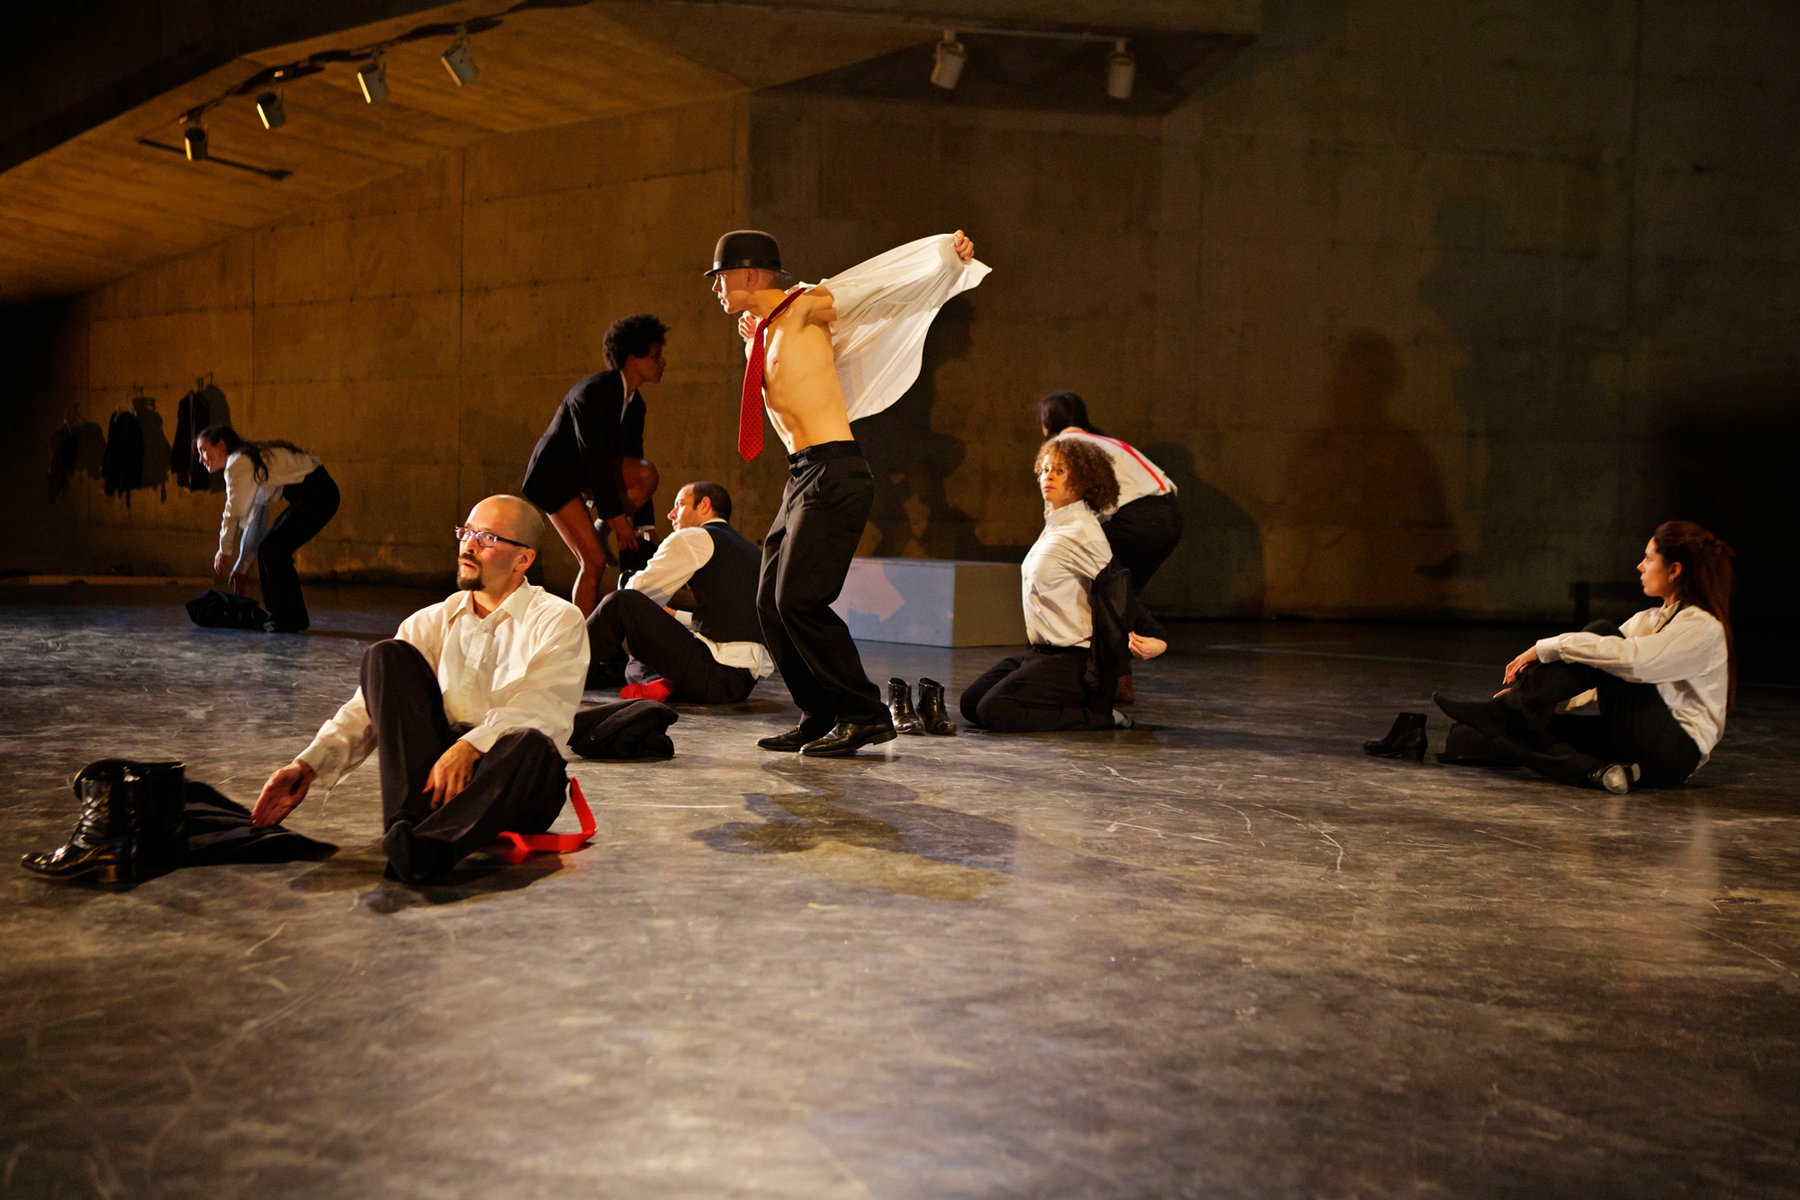 Figures wearing white shirts, red ties, and hats perform on a flat stage, Anna Halpern Soundtracks